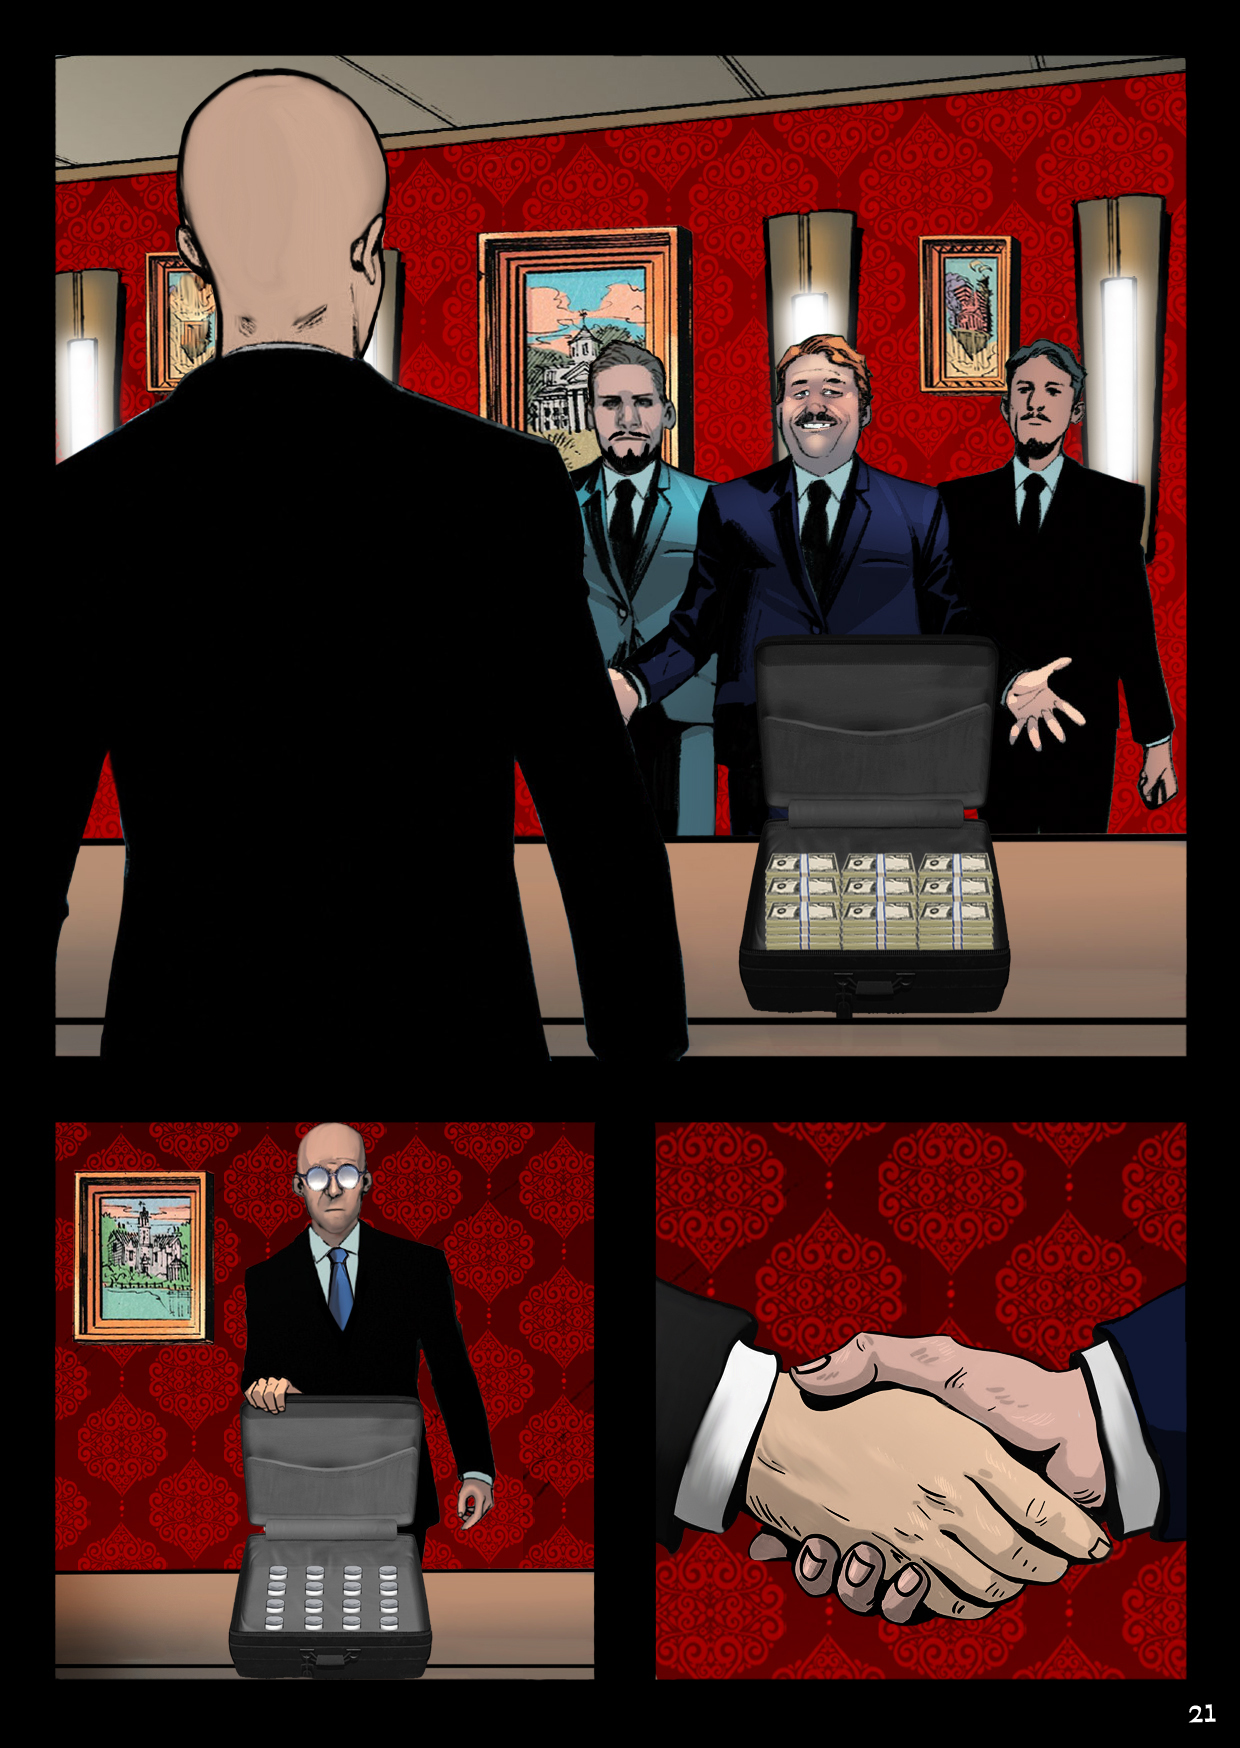 In a posh London gentlemen's club, Dr. Vragov strikes a deal with some shadowy businessmen.